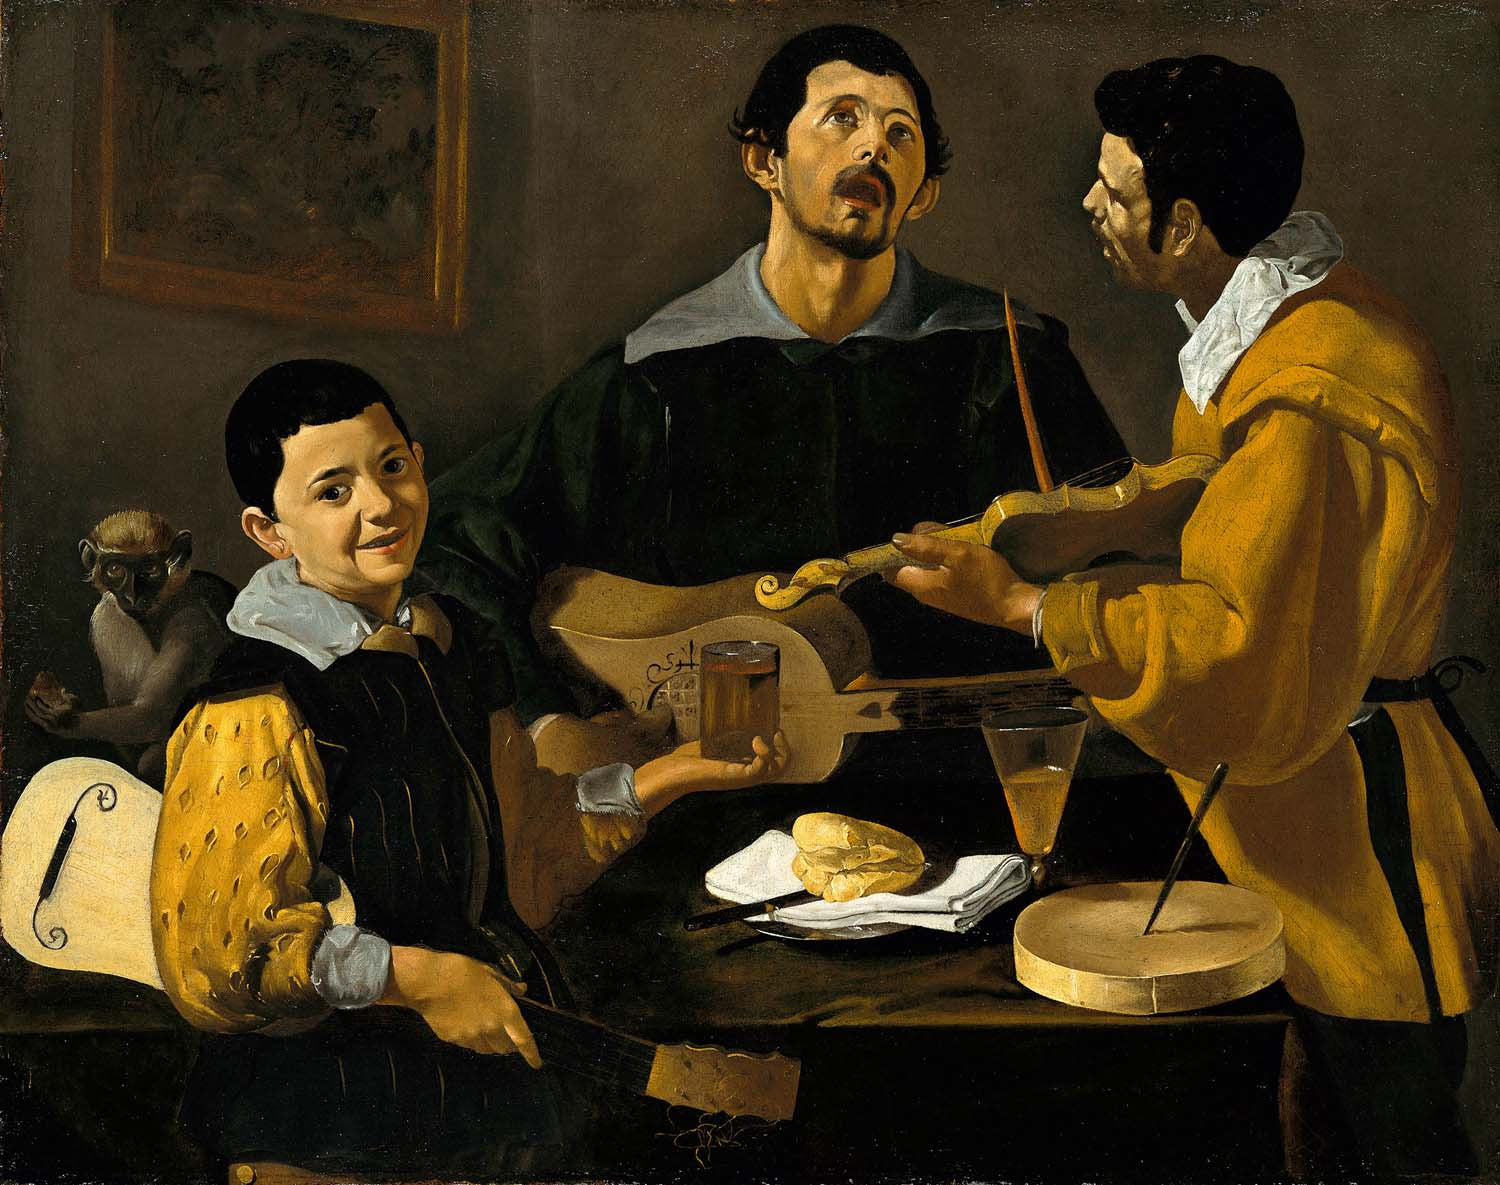 Diego Velázquez | Buy Posters, Frames, Canvas, Digital Art & Large Size Prints Of The Famous Old Master's Artworks